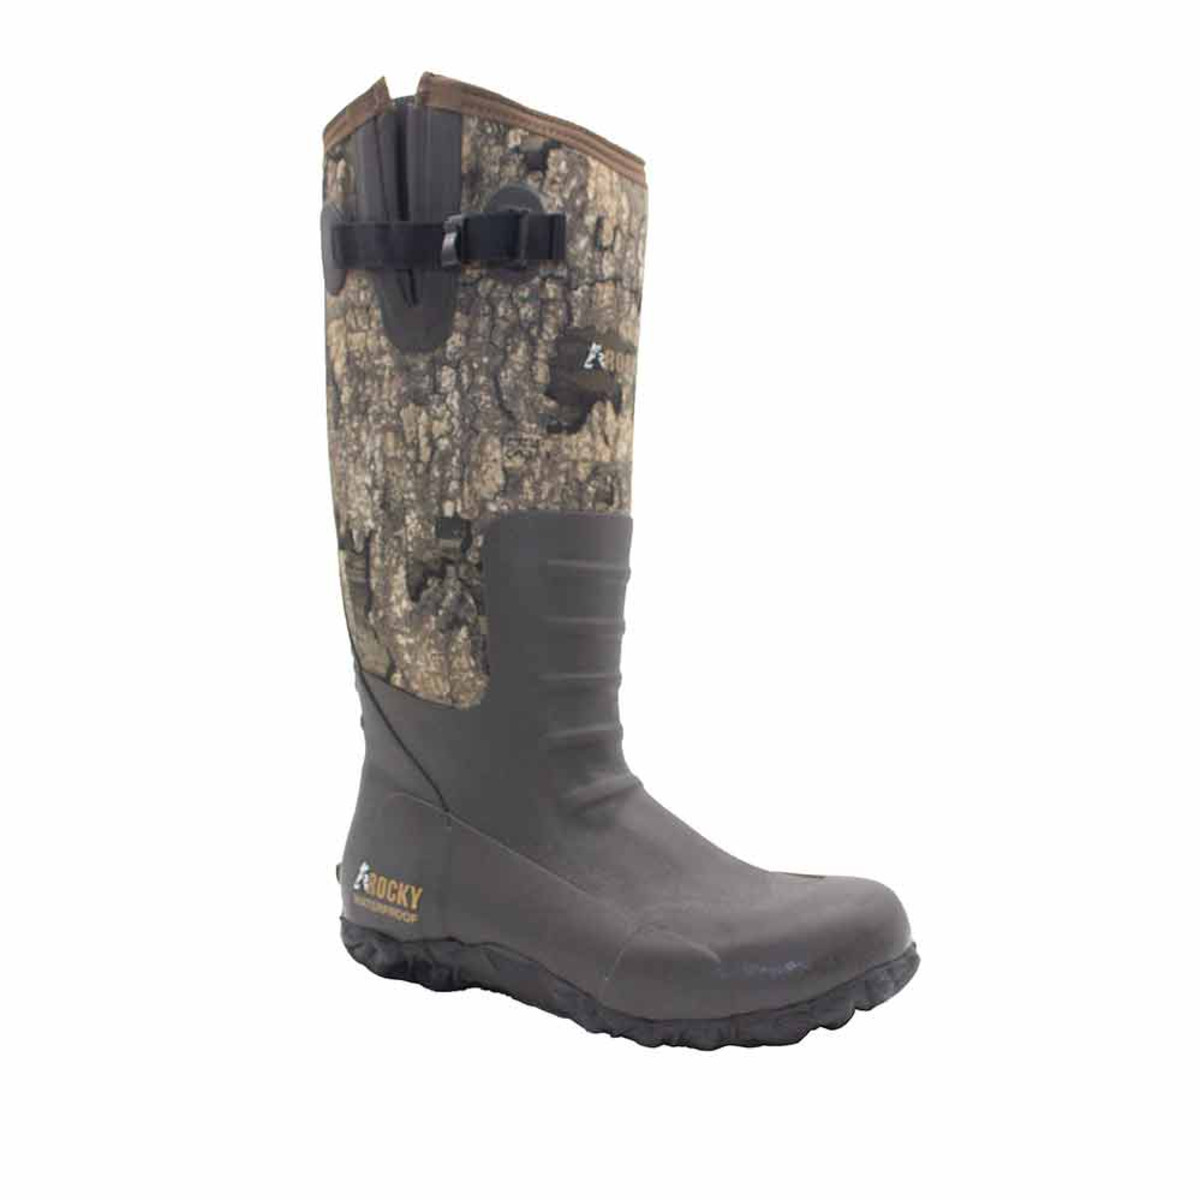 Rocky Core Waterproof Rubber Boot